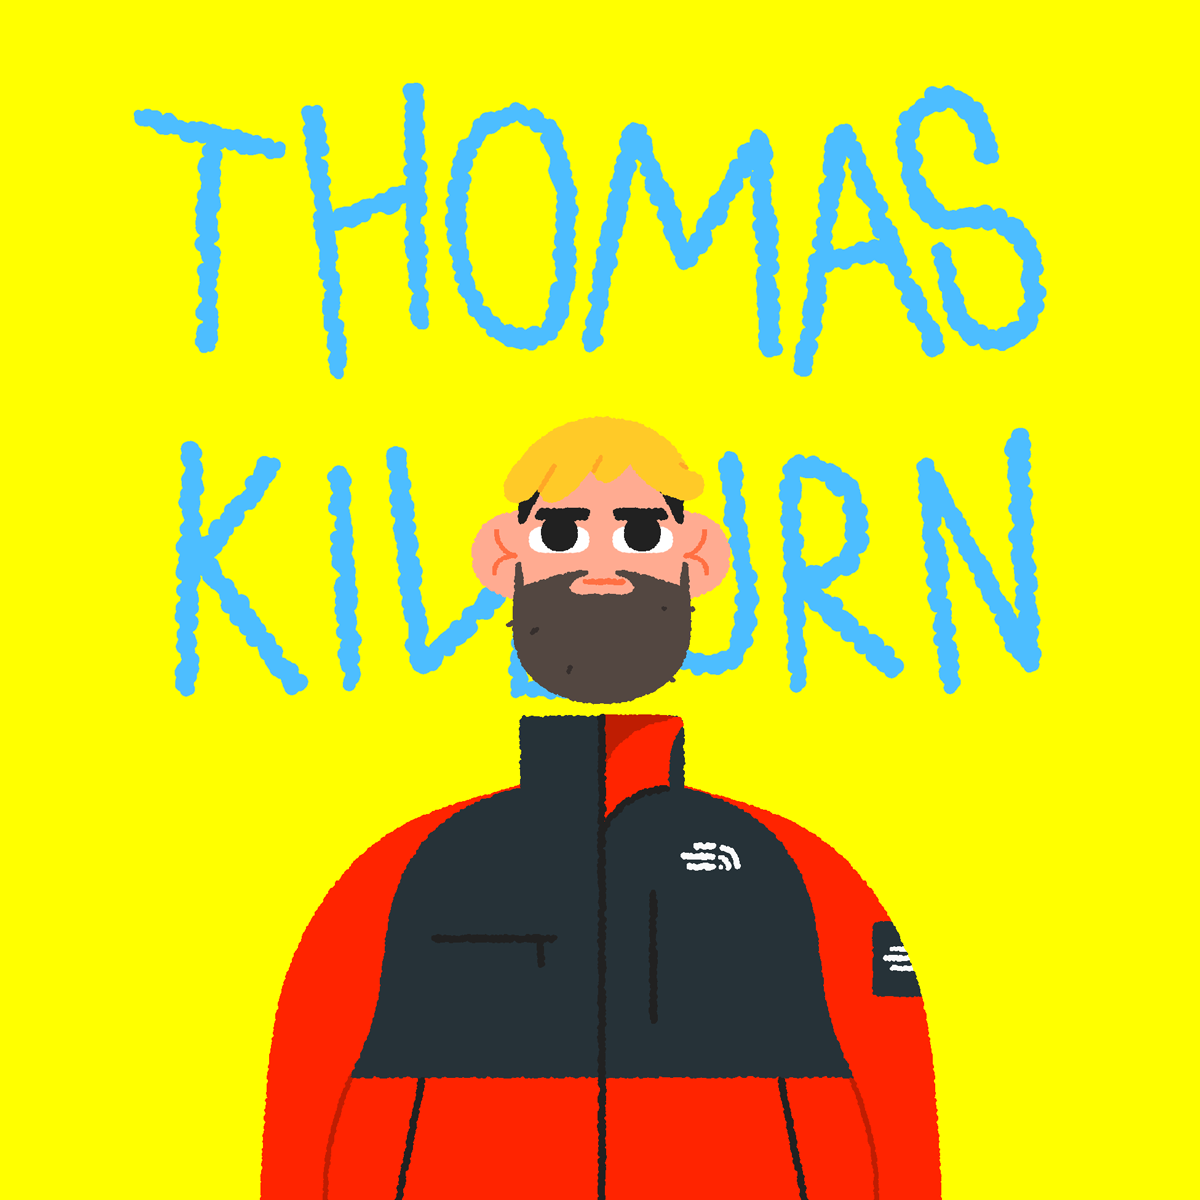 Thomas Kilburn | Animator & Illustrator